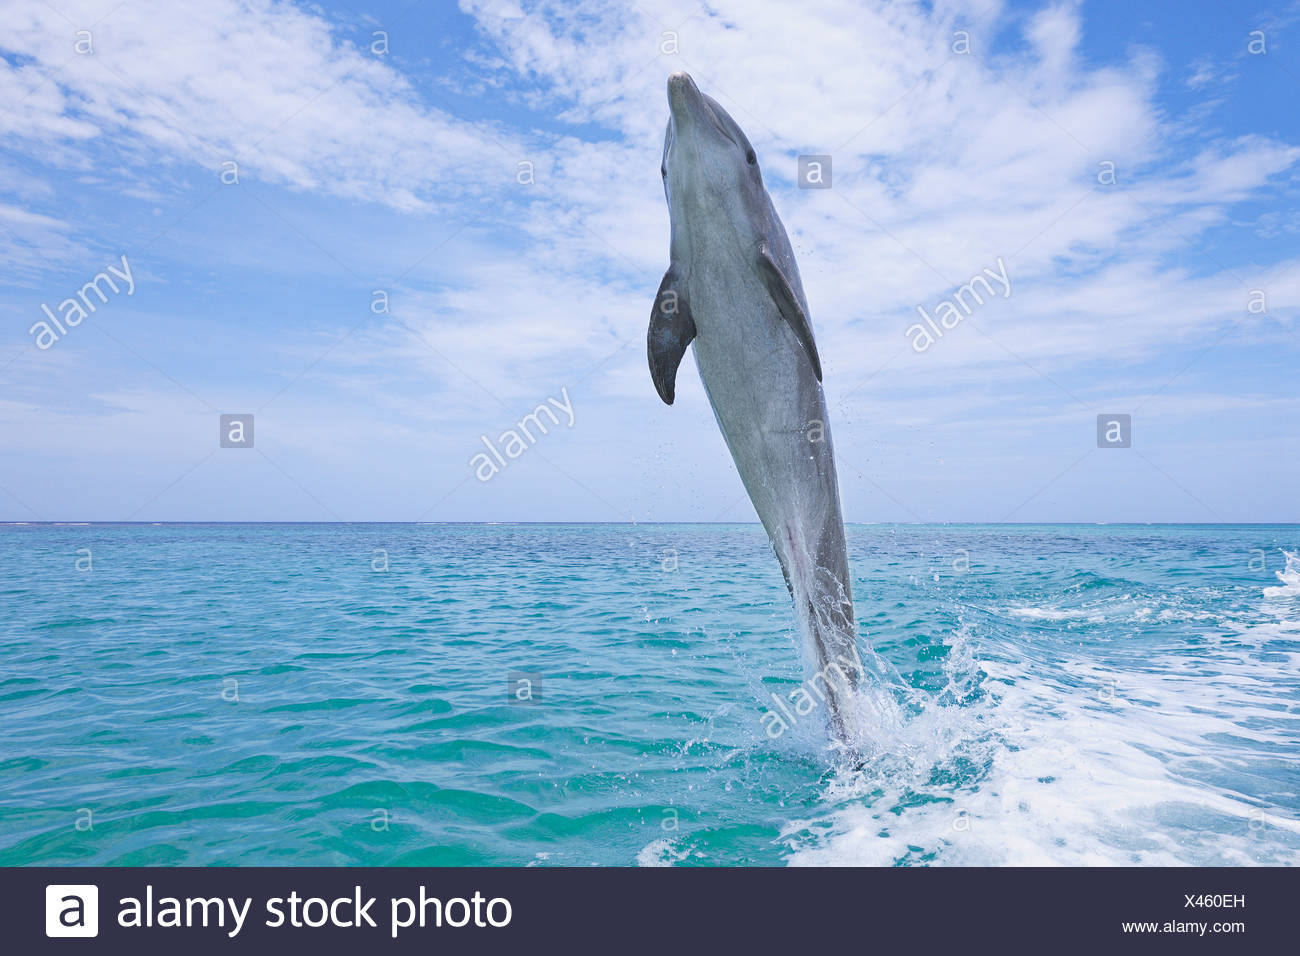 Latin America, Honduras, Bay Islands Department, Roatan, Caribbean Sea, View of bottlenose dolphin jumping in seawater - Stock Image